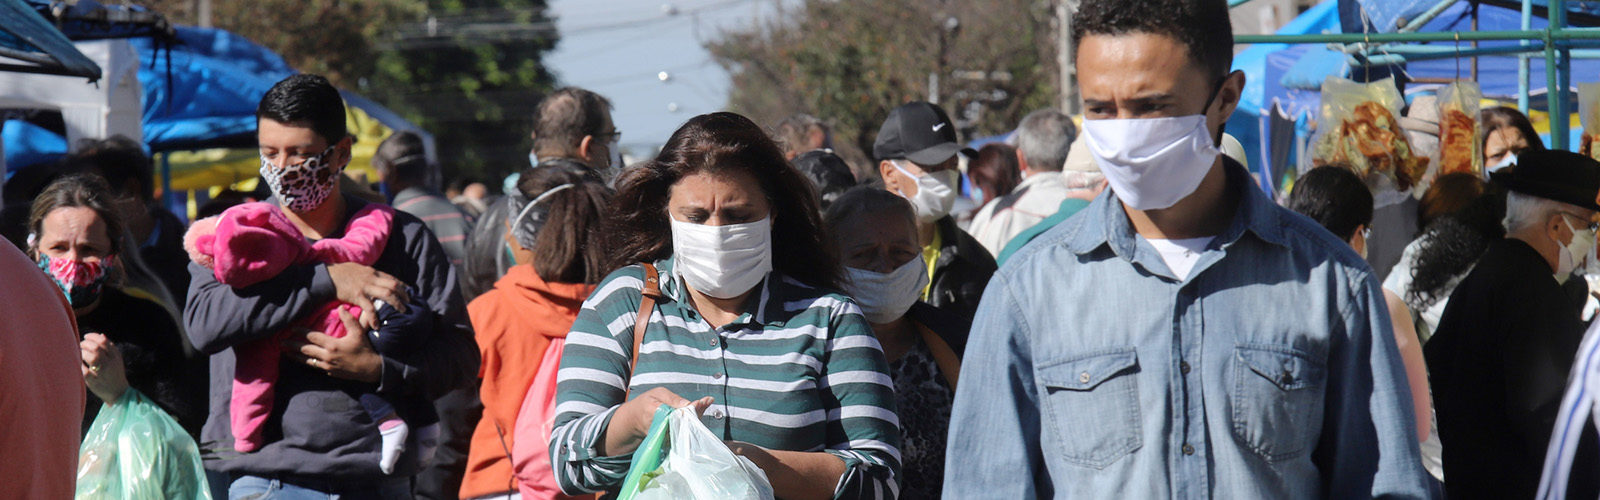 Brazil's pandemic challenges